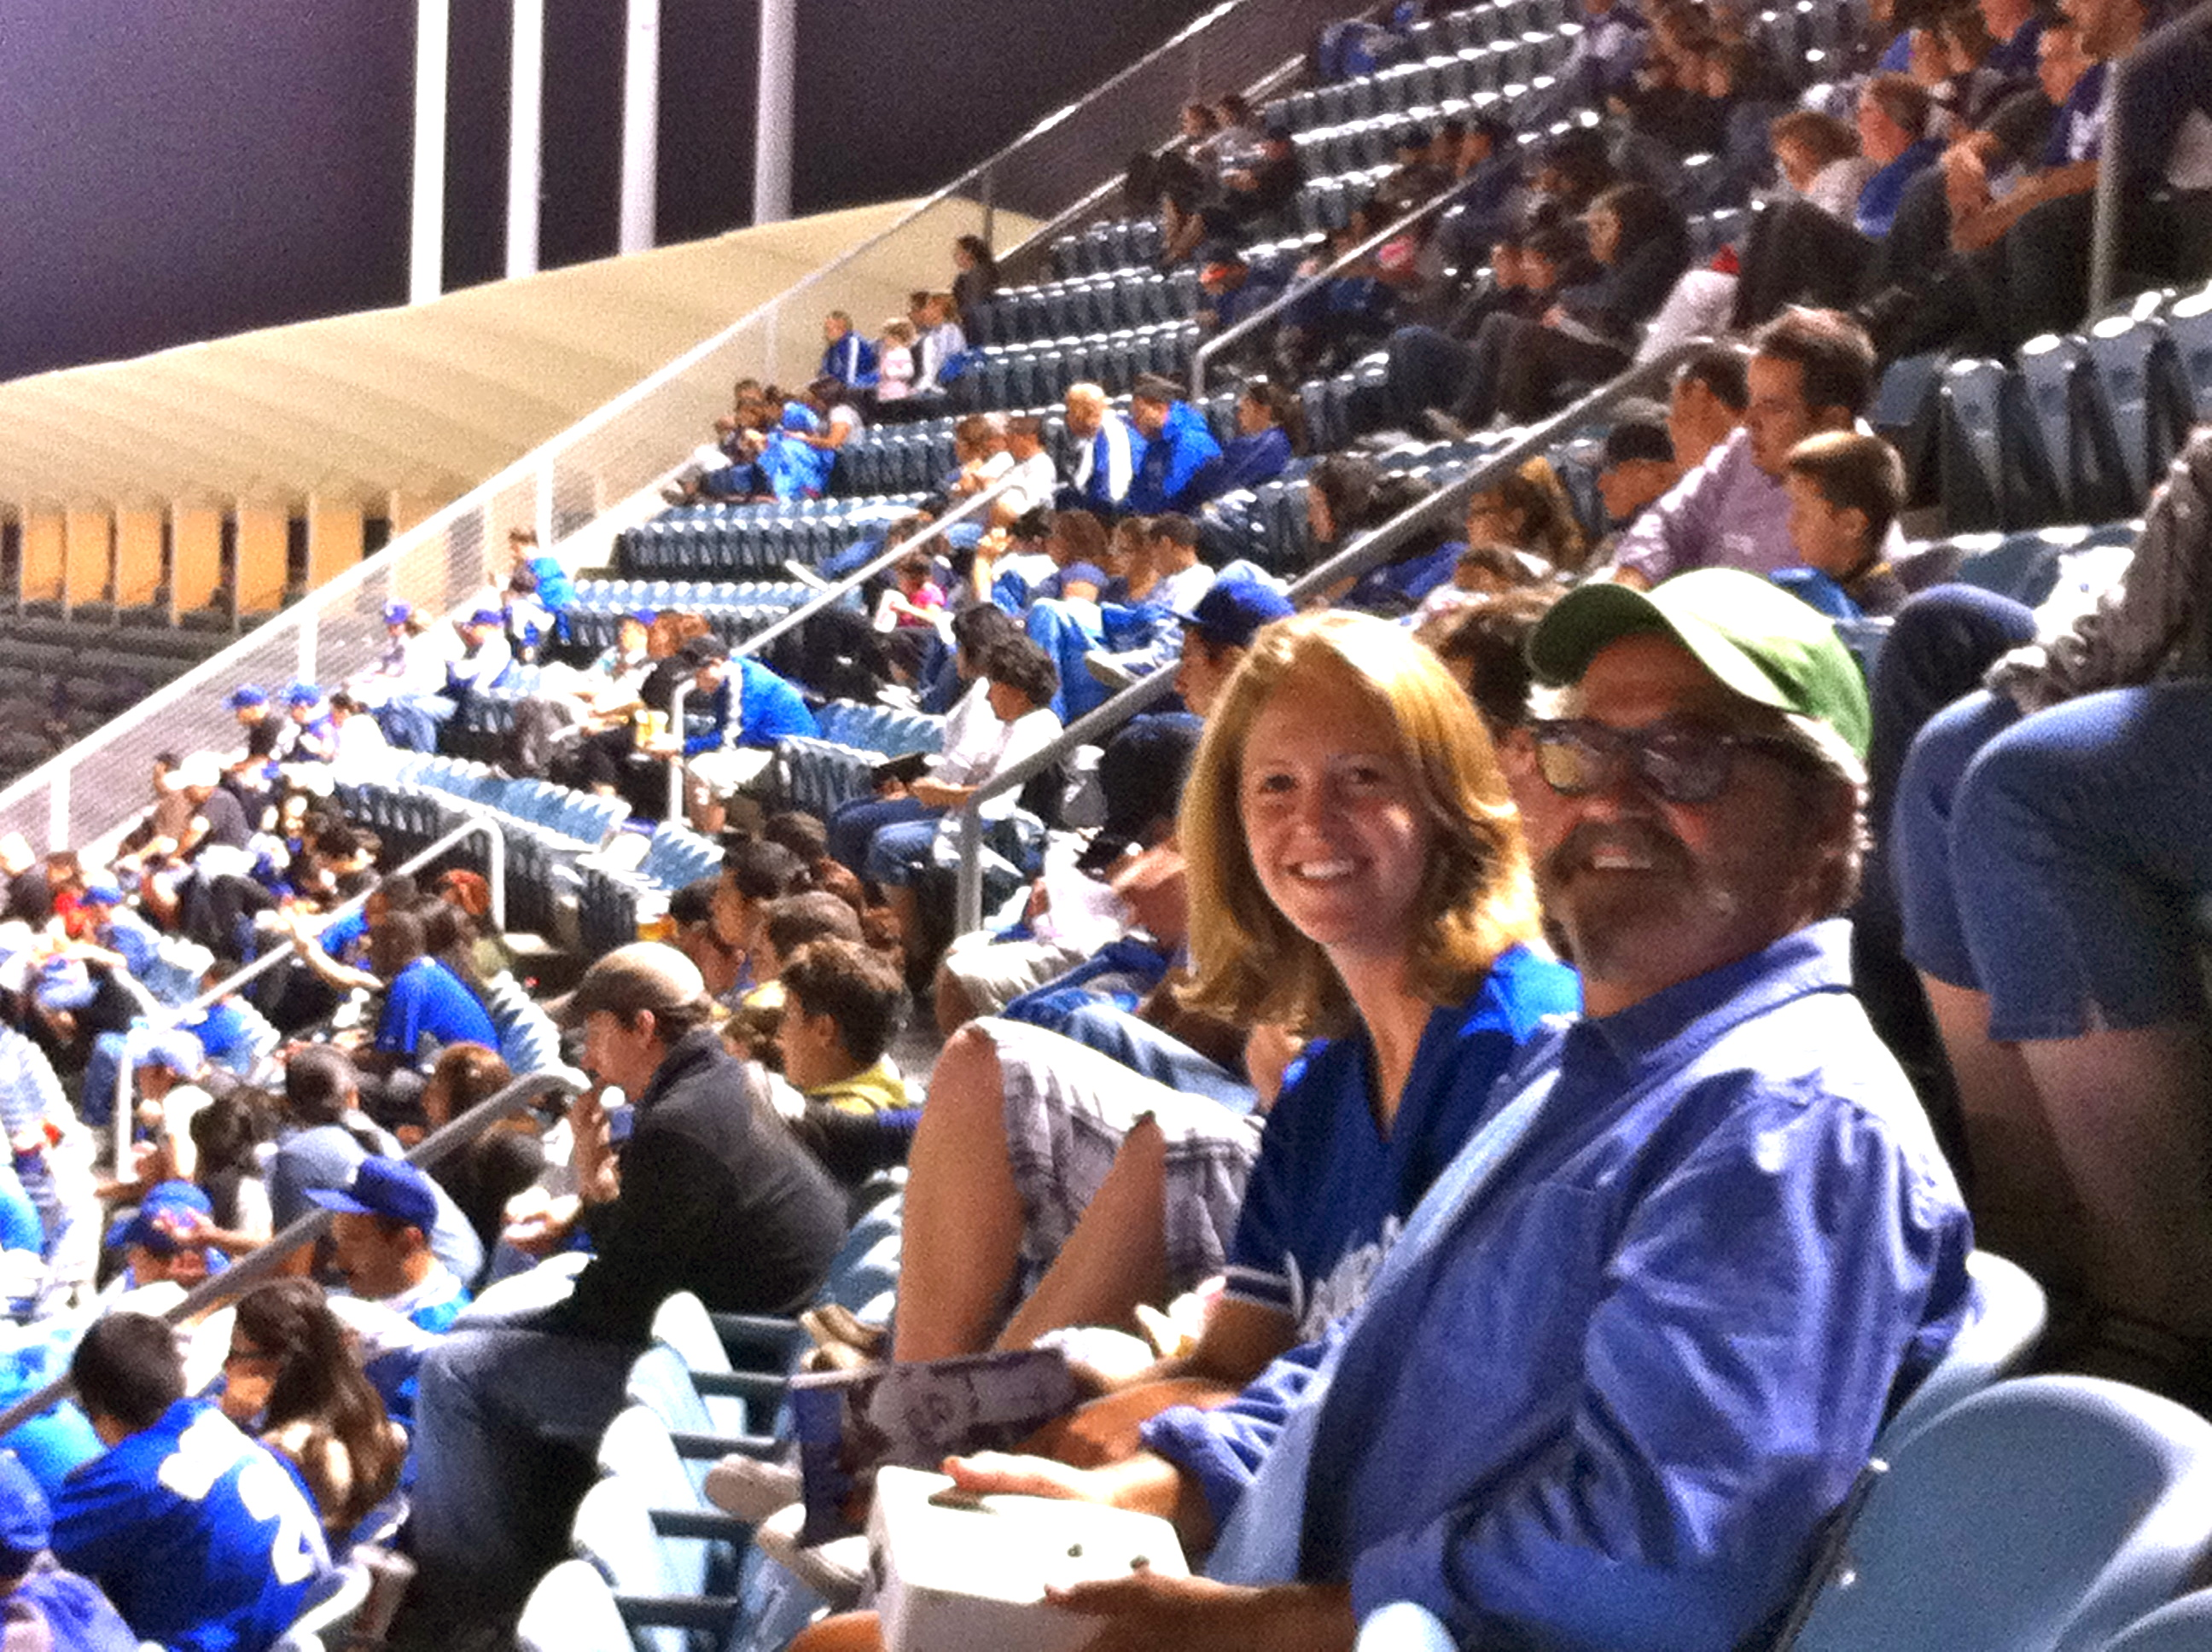 Grooving at Dodger Stadium | GrooveCentralLA